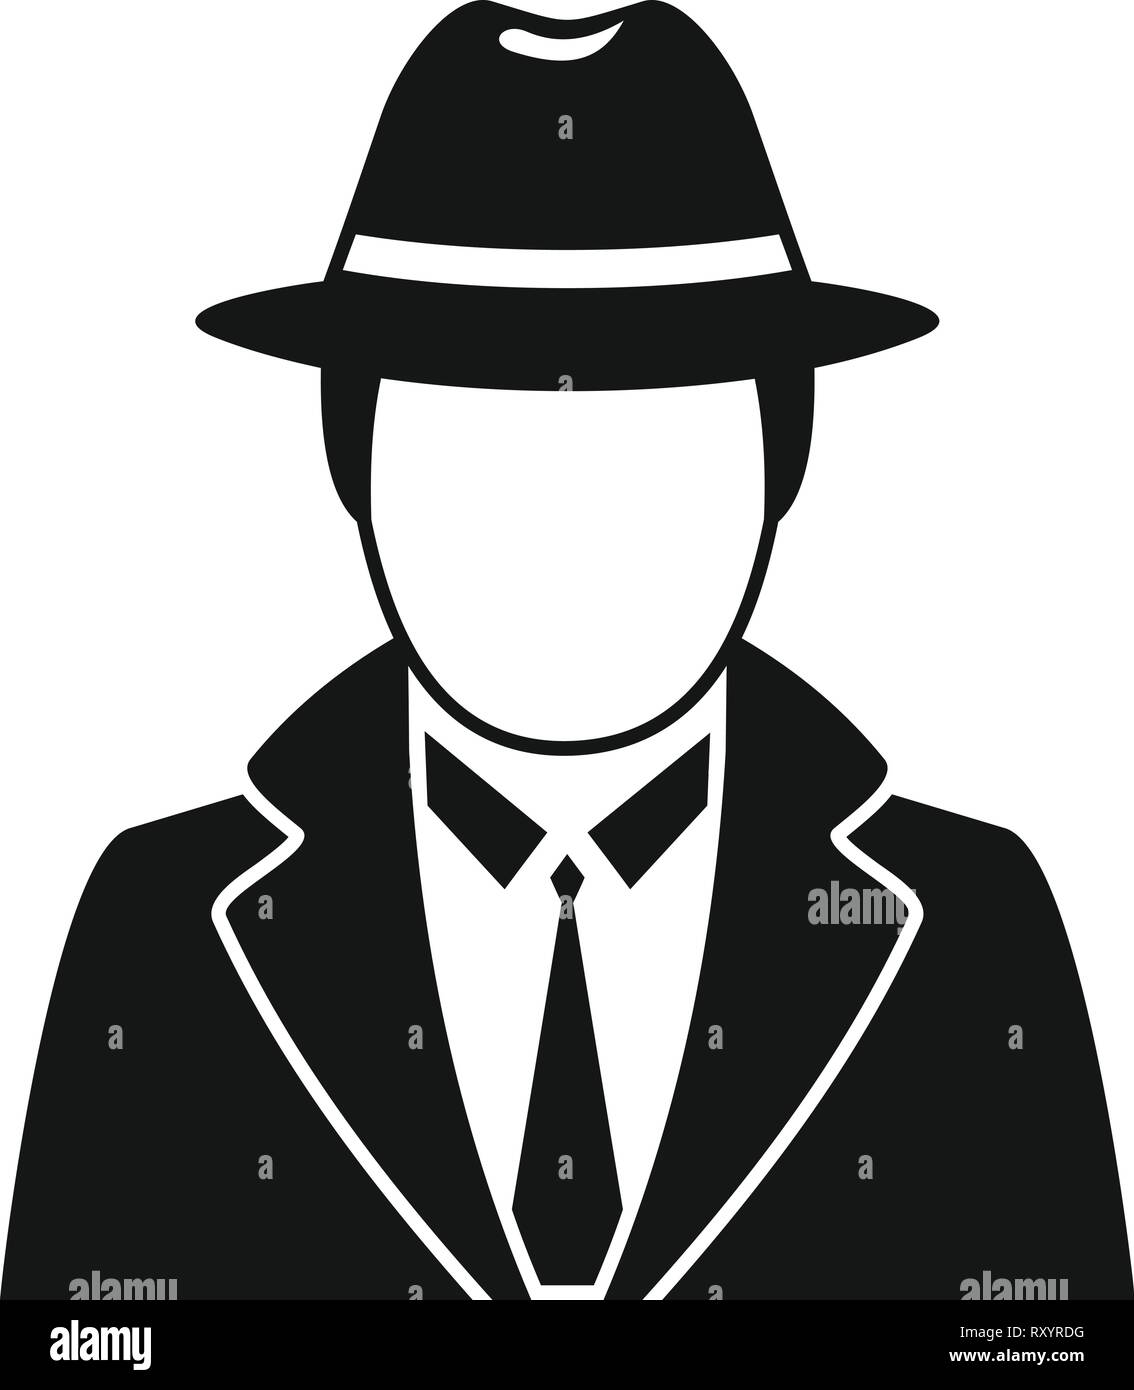 Private Detective Hat High Resolution Stock Photography And Images Alamy 700+ vectors, stock photos & psd files. https www alamy com police detective icon simple illustration of police detective vector icon for web design isolated on white background image240326956 html